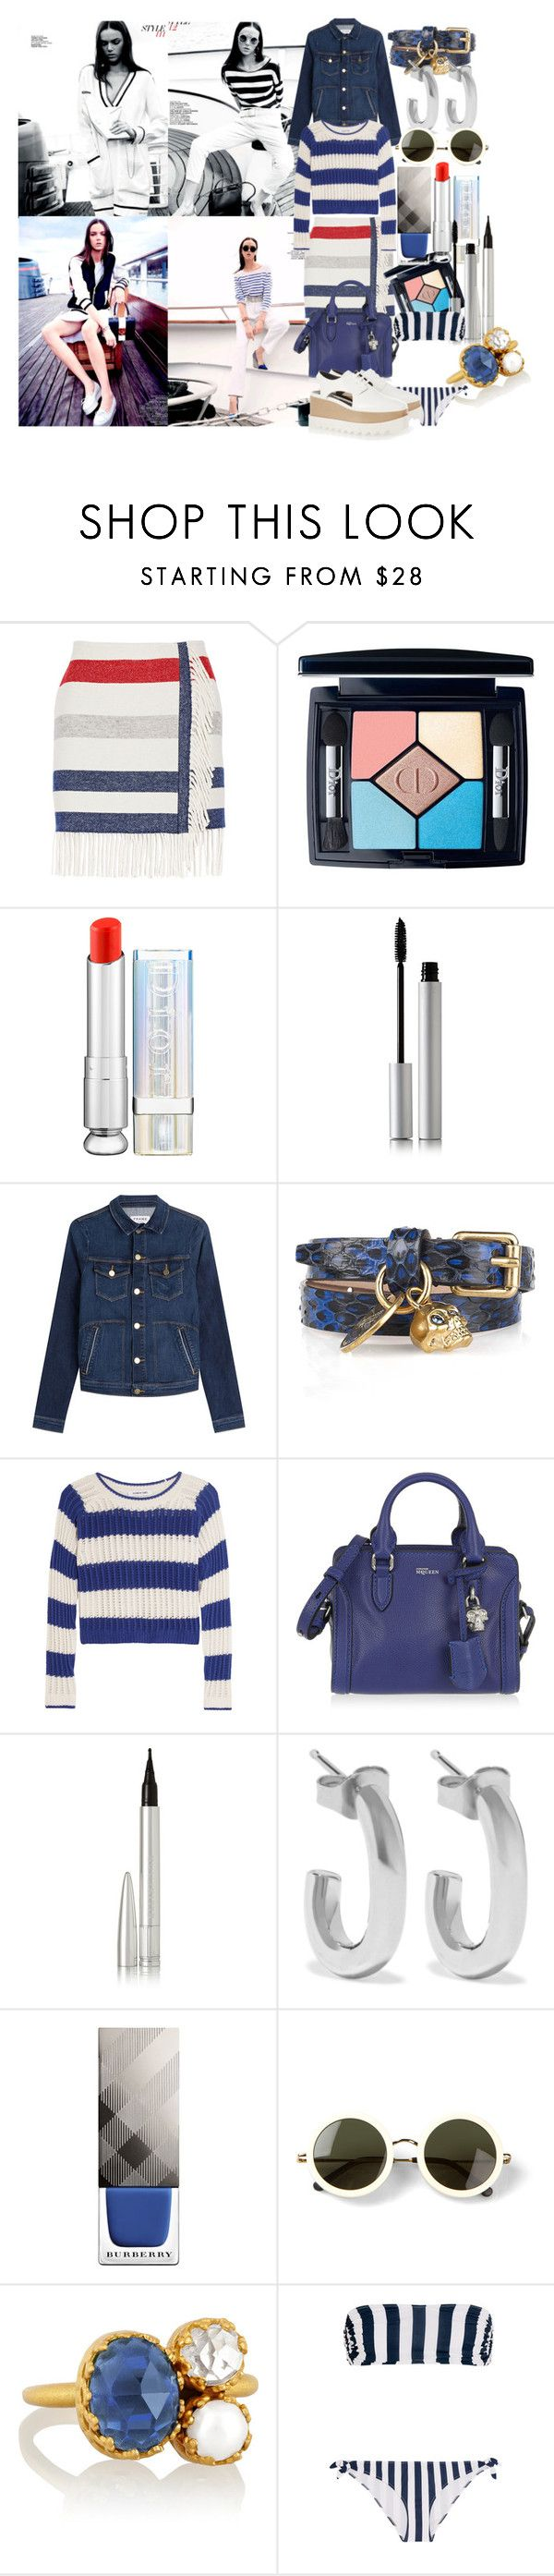 """""""On the boat"""" by brownish ❤ liked on Polyvore featuring Paul & Joe, Christian Dior, rms beauty, Frame Denim, Alexander McQueen, Elizabeth and James, Ellis Faas, Jennifer Fisher, Burberry and The Row"""